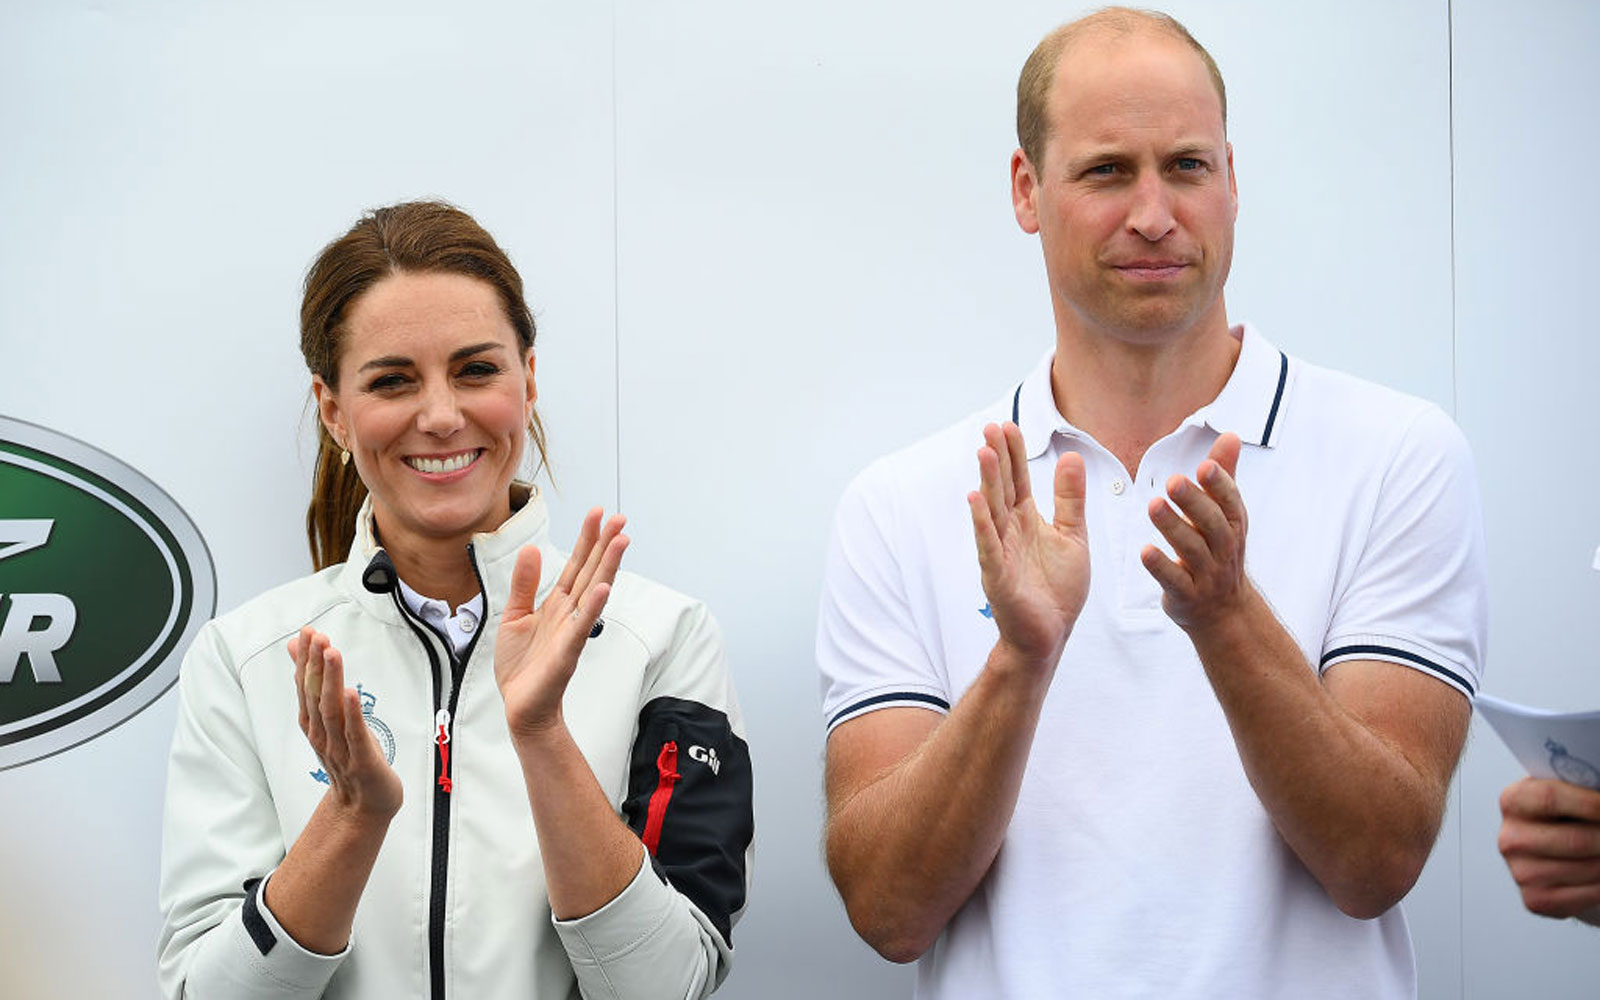 Catherine, Duchess of Cambridge and her husband Prince William, Duke of Cambridge competing on behalf of The Royal Foundation at the inaugural King's Cup regatta